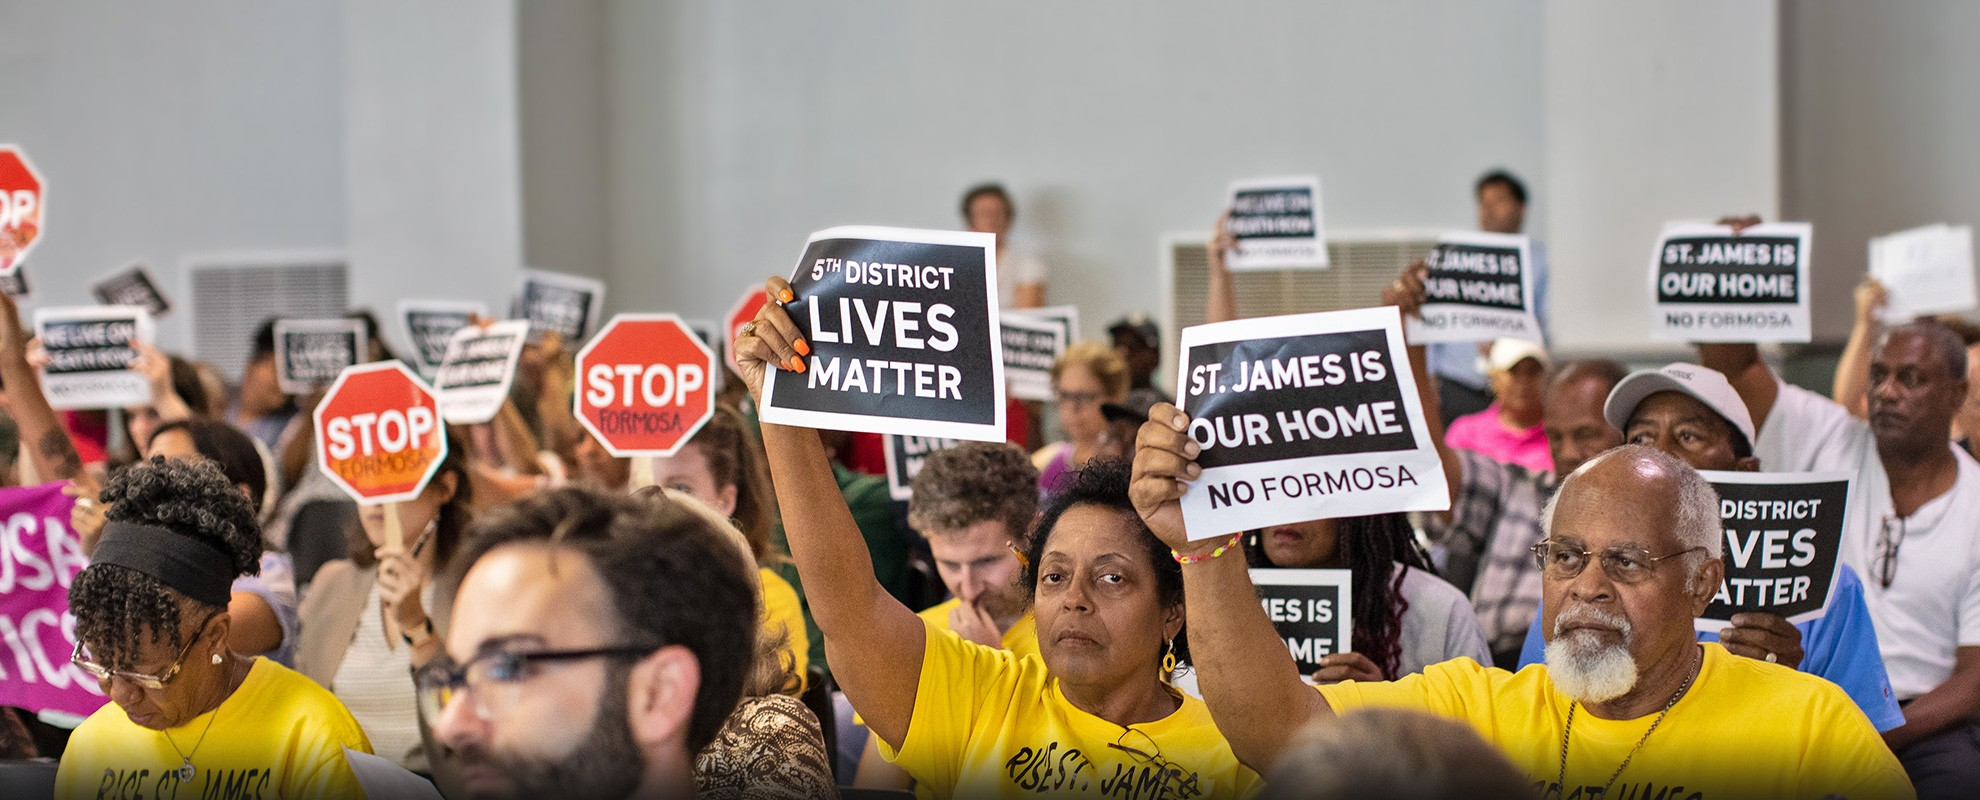 Sharon Lavigne of Rise St. James is fighting a massive petrochemical complex.